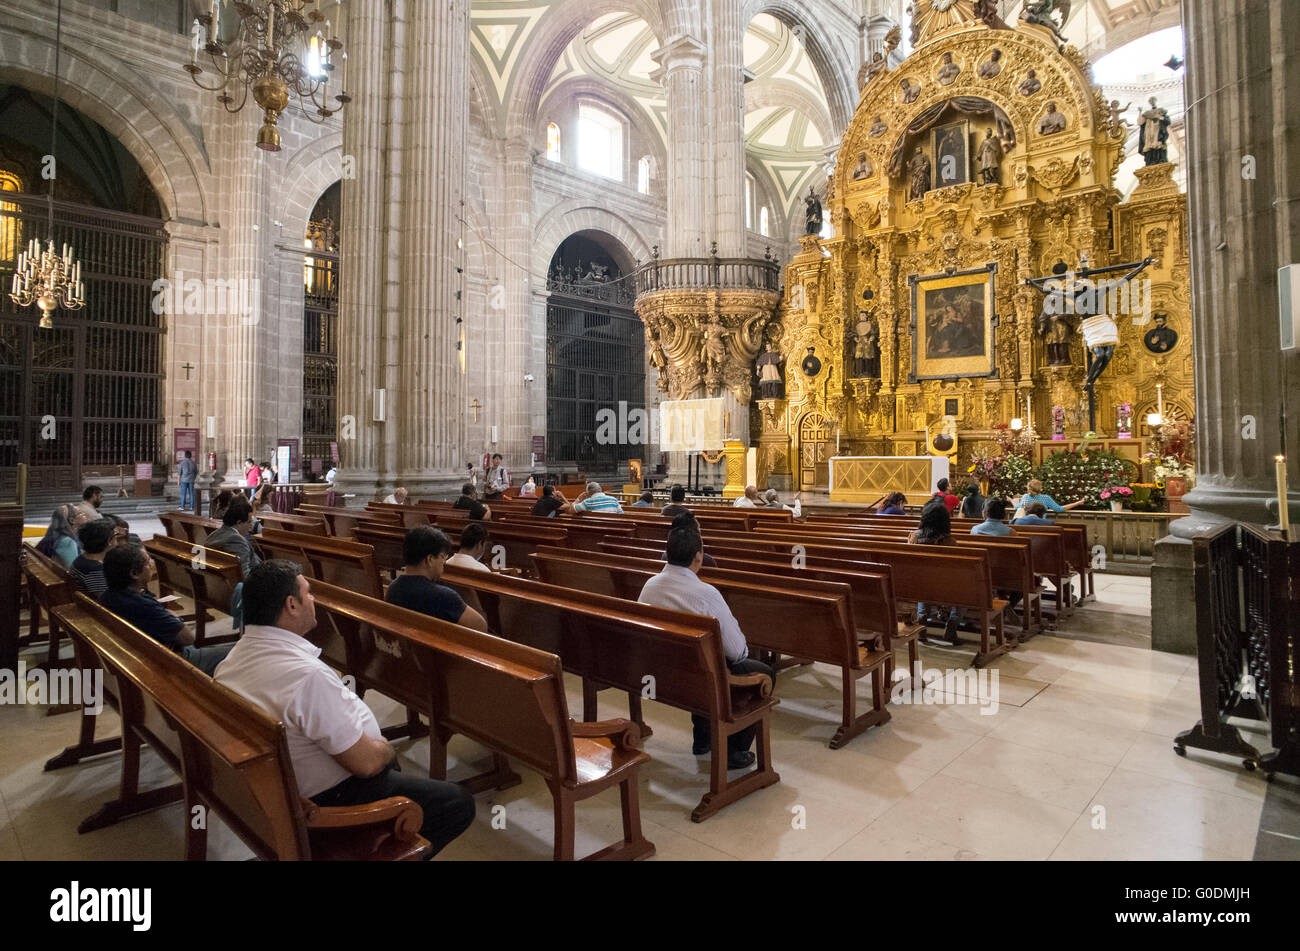 MEXICO CITY, MEXICO --Built in stages from 1573 to 1813, the Mexico City Metropolitan Cathedral is the largest Roman - Stock Image